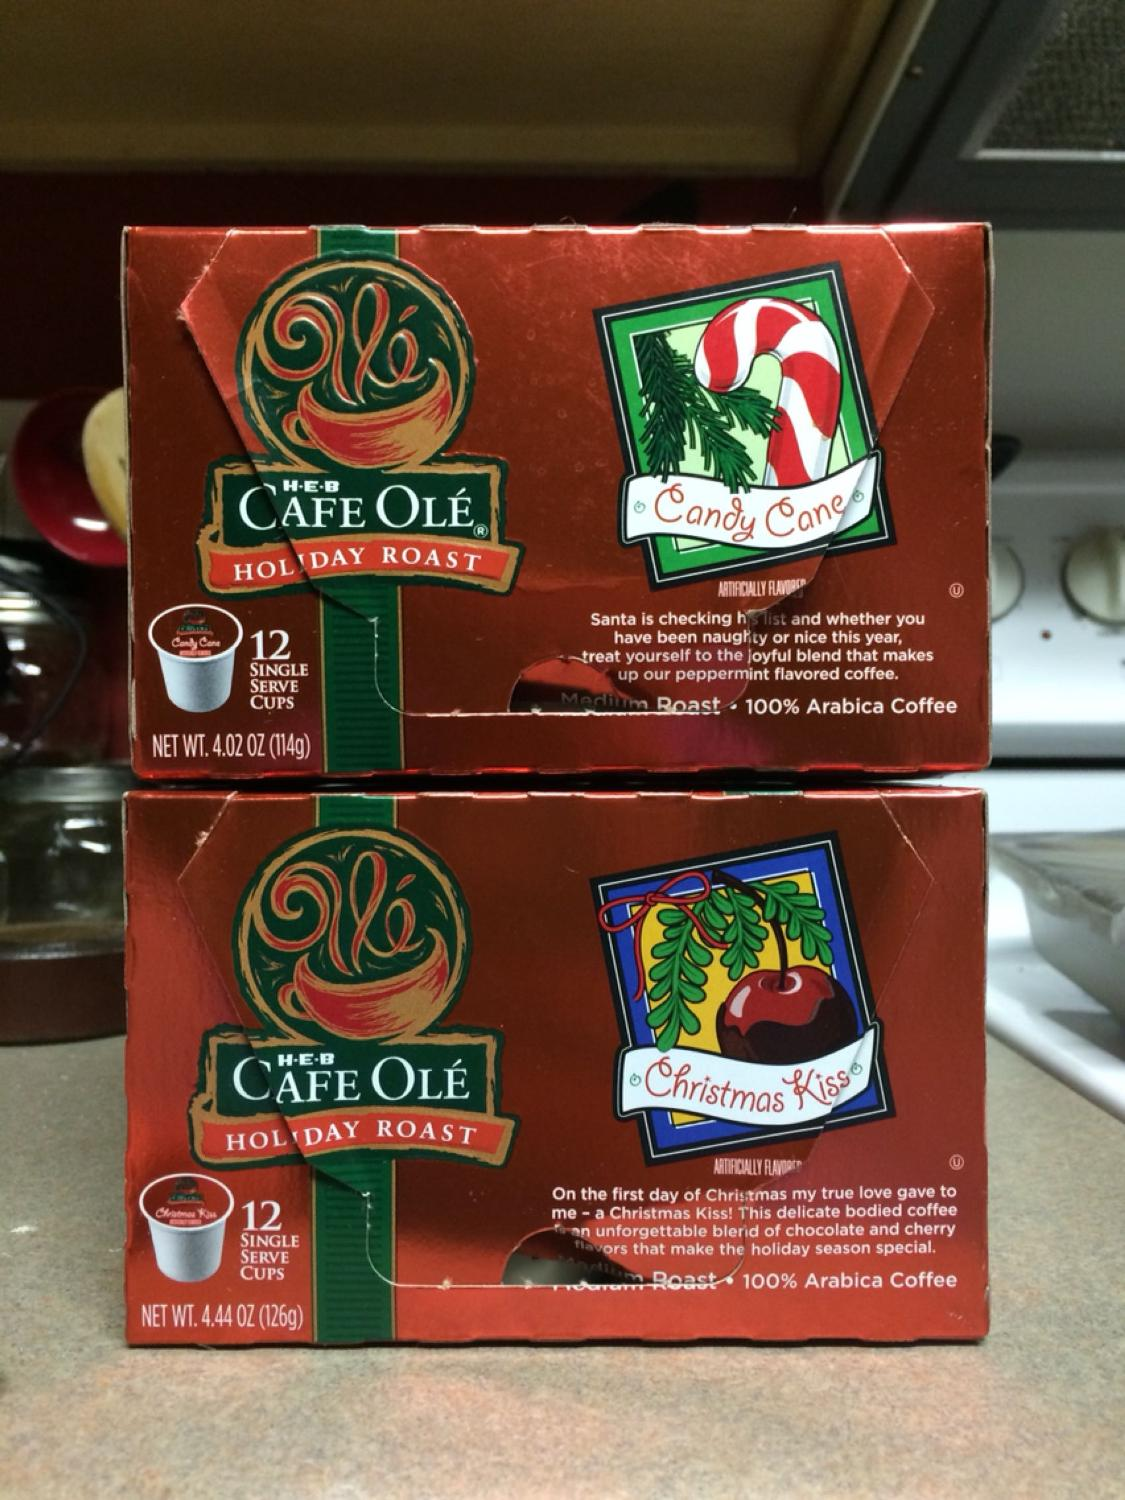 K-cups - HEB Cafe Olé Holiday Roast  Candy Cane & Christmas Kiss  - I just  don't like peppermint or chocolate flavors in my coffee